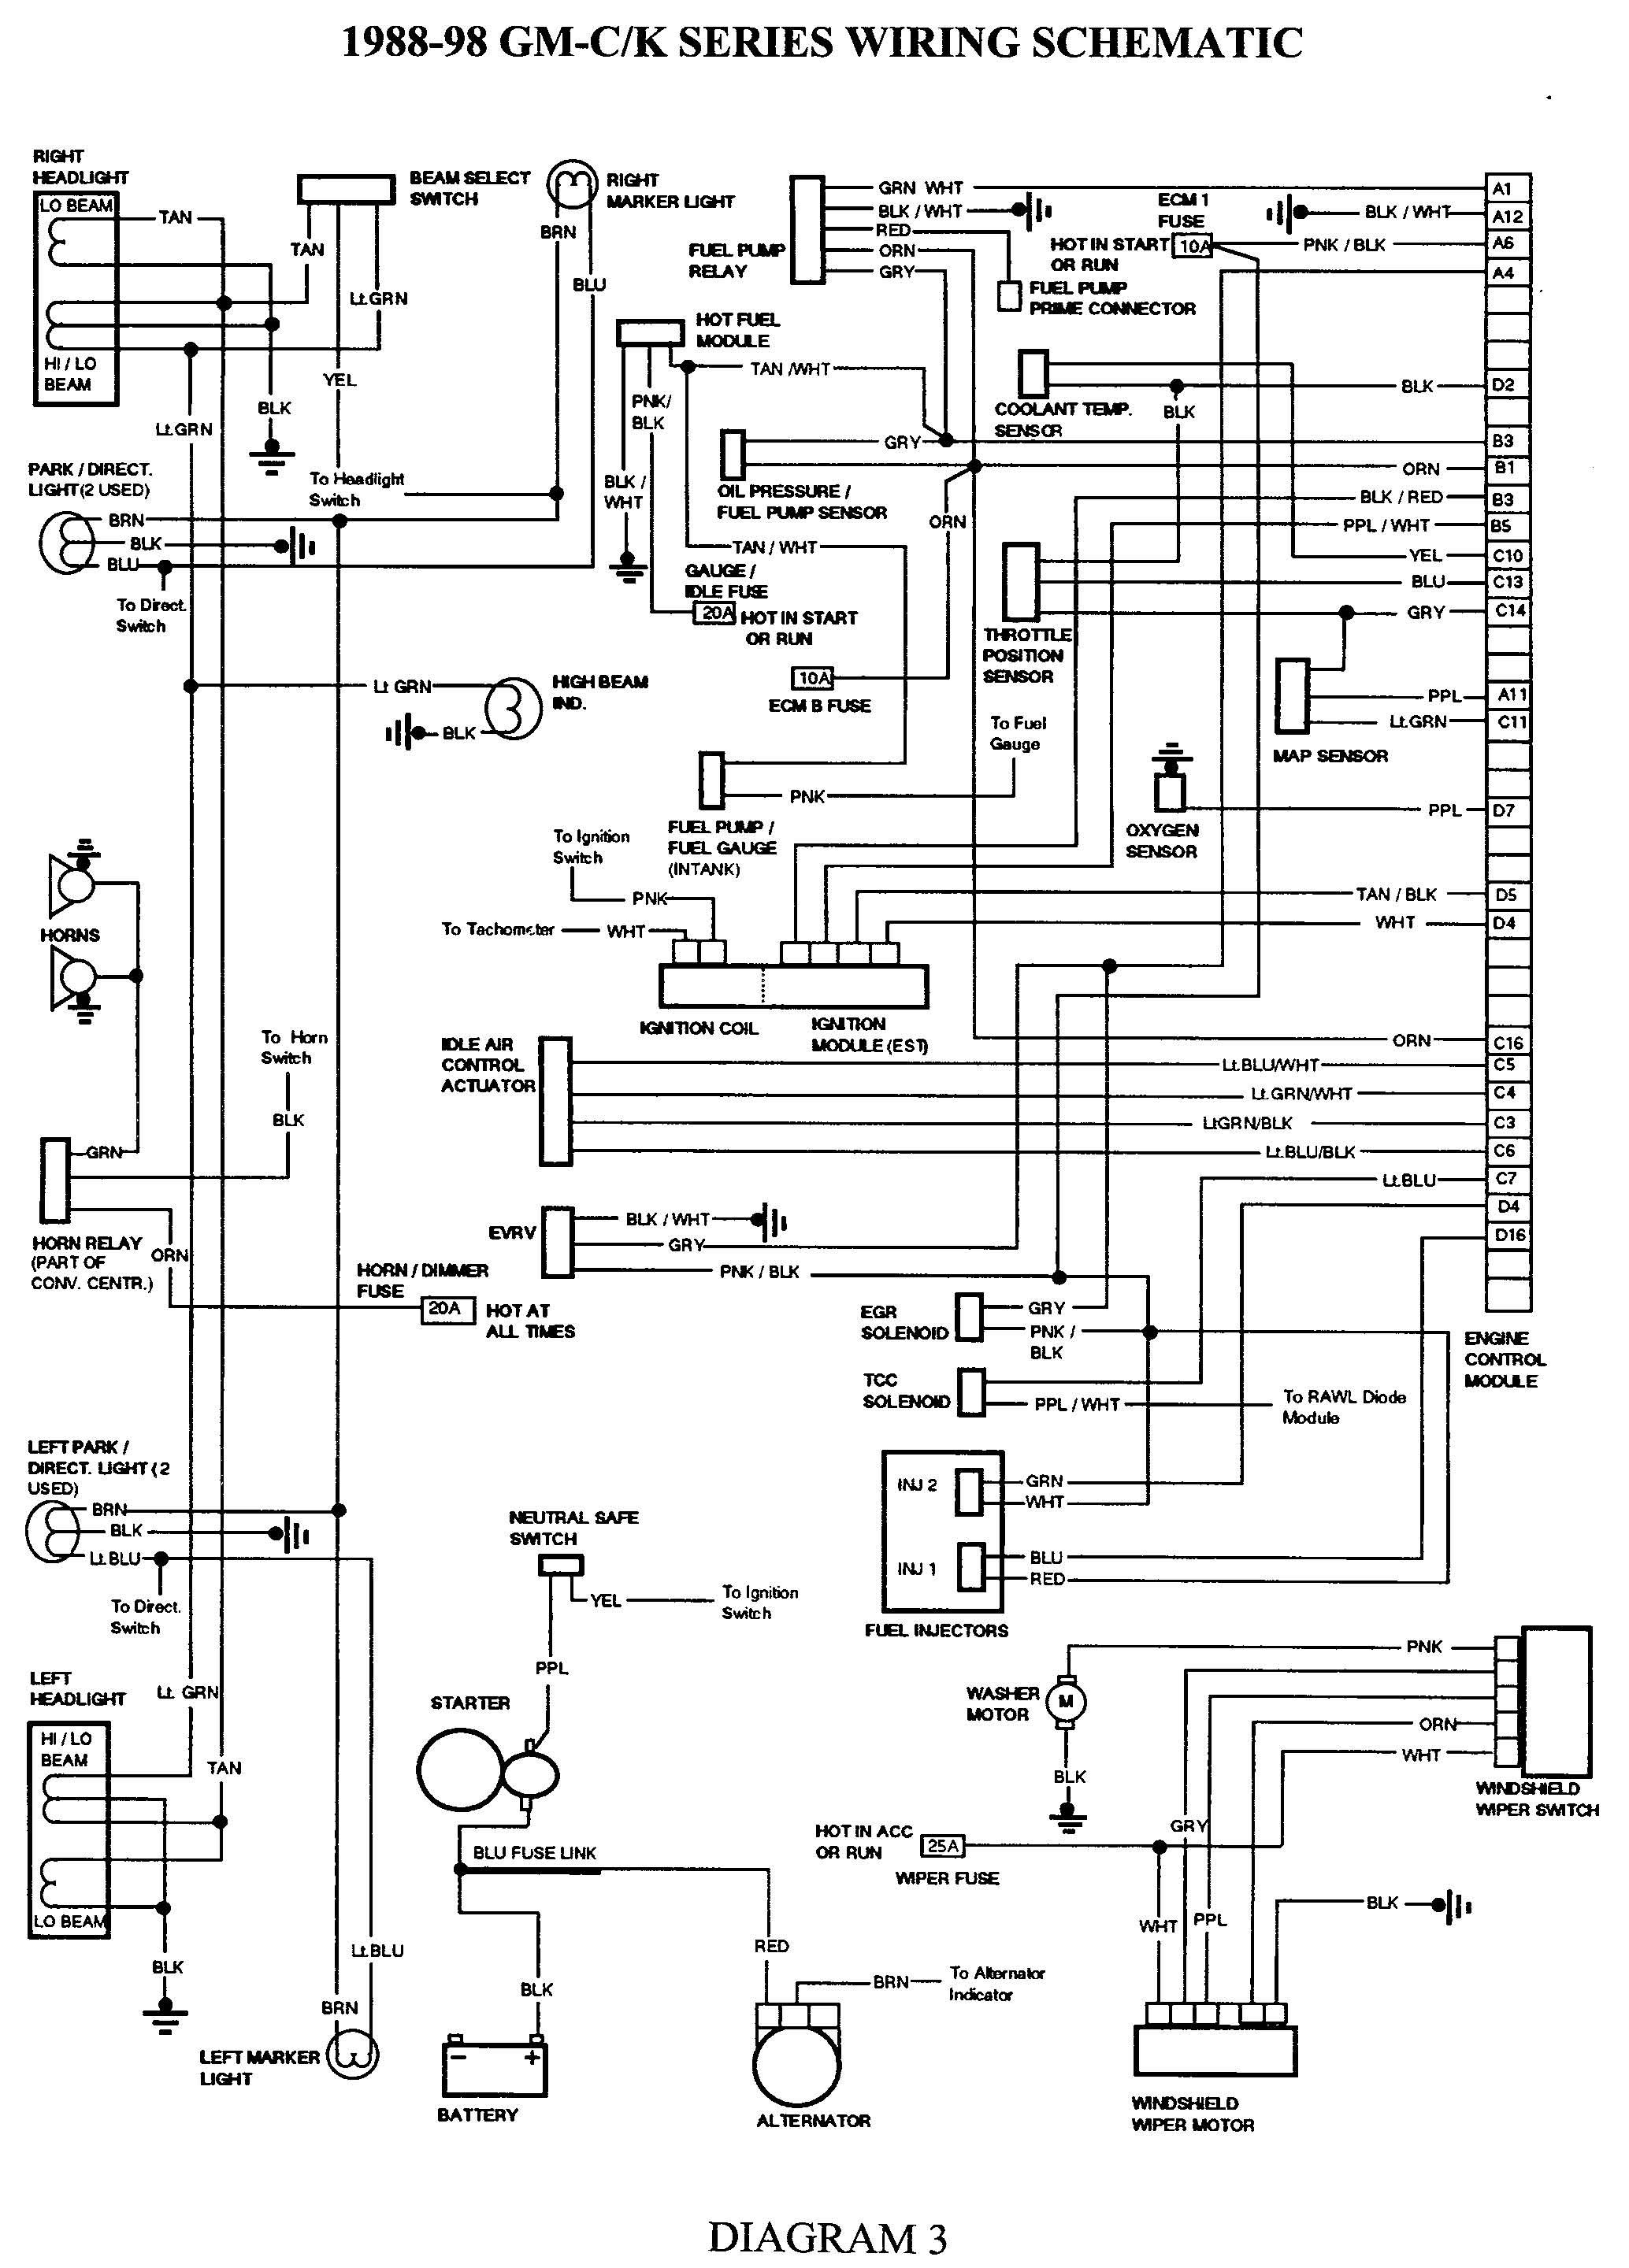 b2f2e5dbdc07dada83ef514f6d4ce3d4 gmc truck wiring diagrams on gm wiring harness diagram 88 98 kc wiring harness for chevy truck at bayanpartner.co